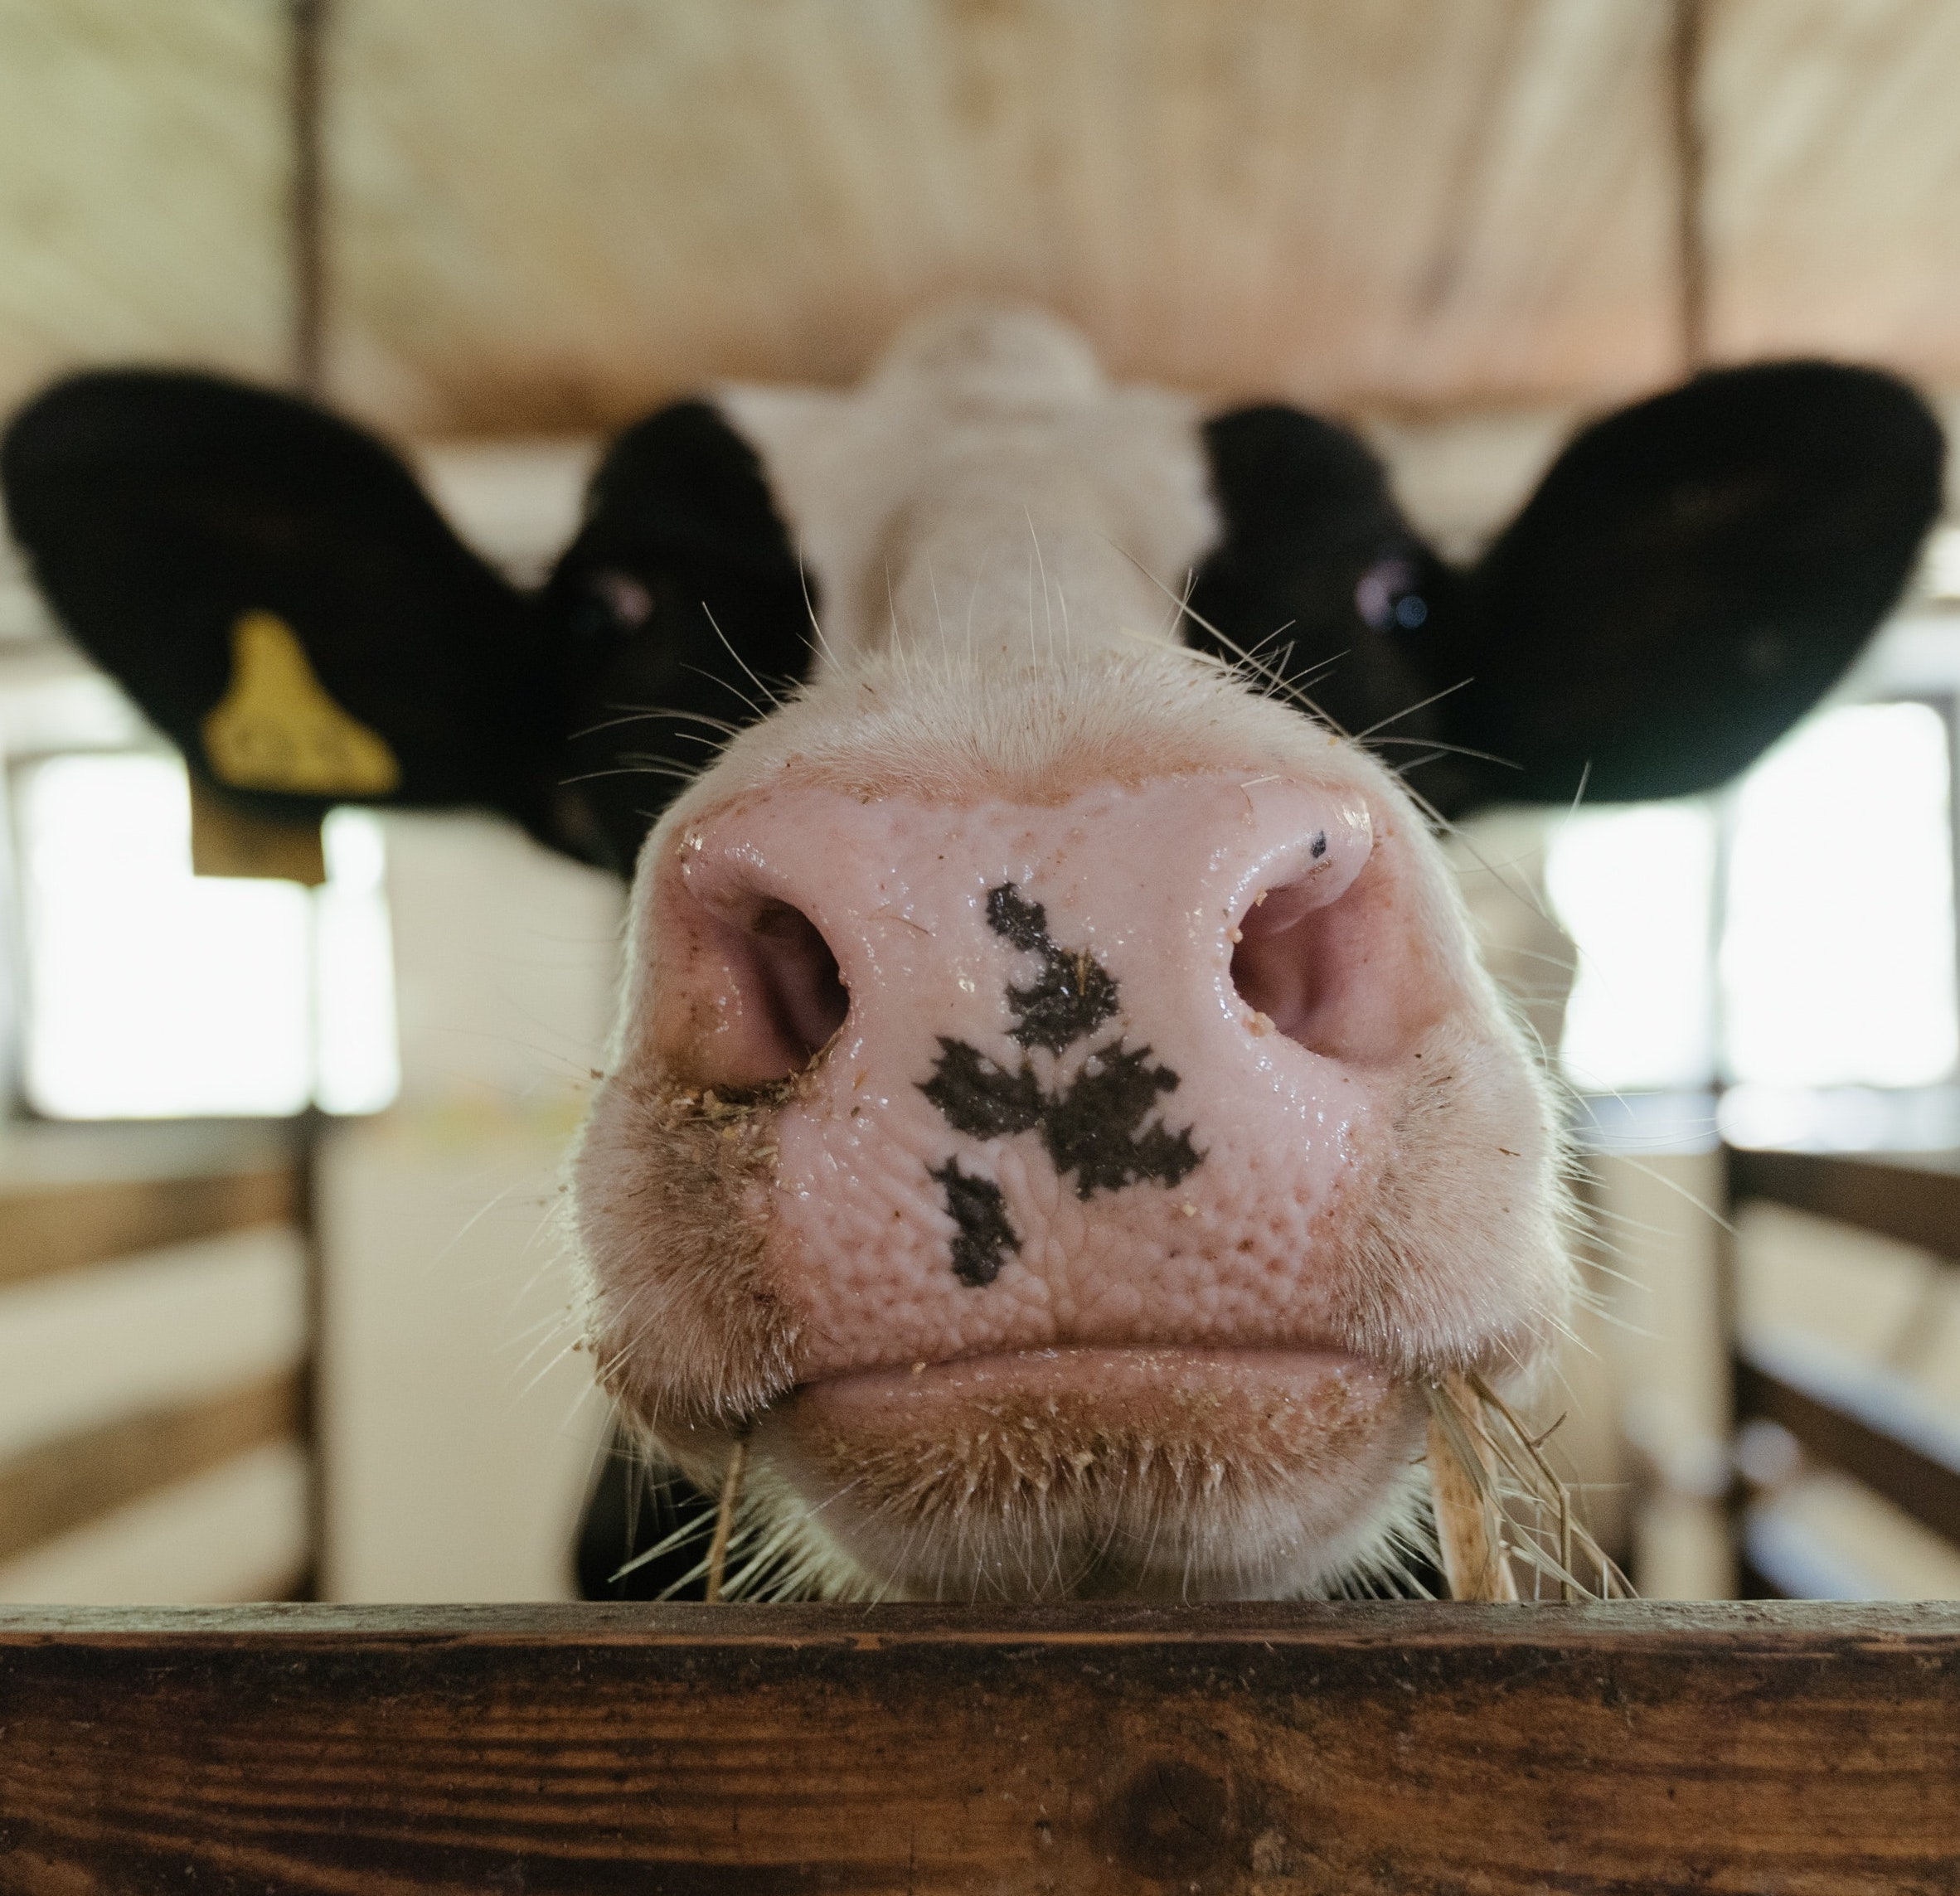 https://www.pexels.com/photo/white-and-black-cow-head-4910769/